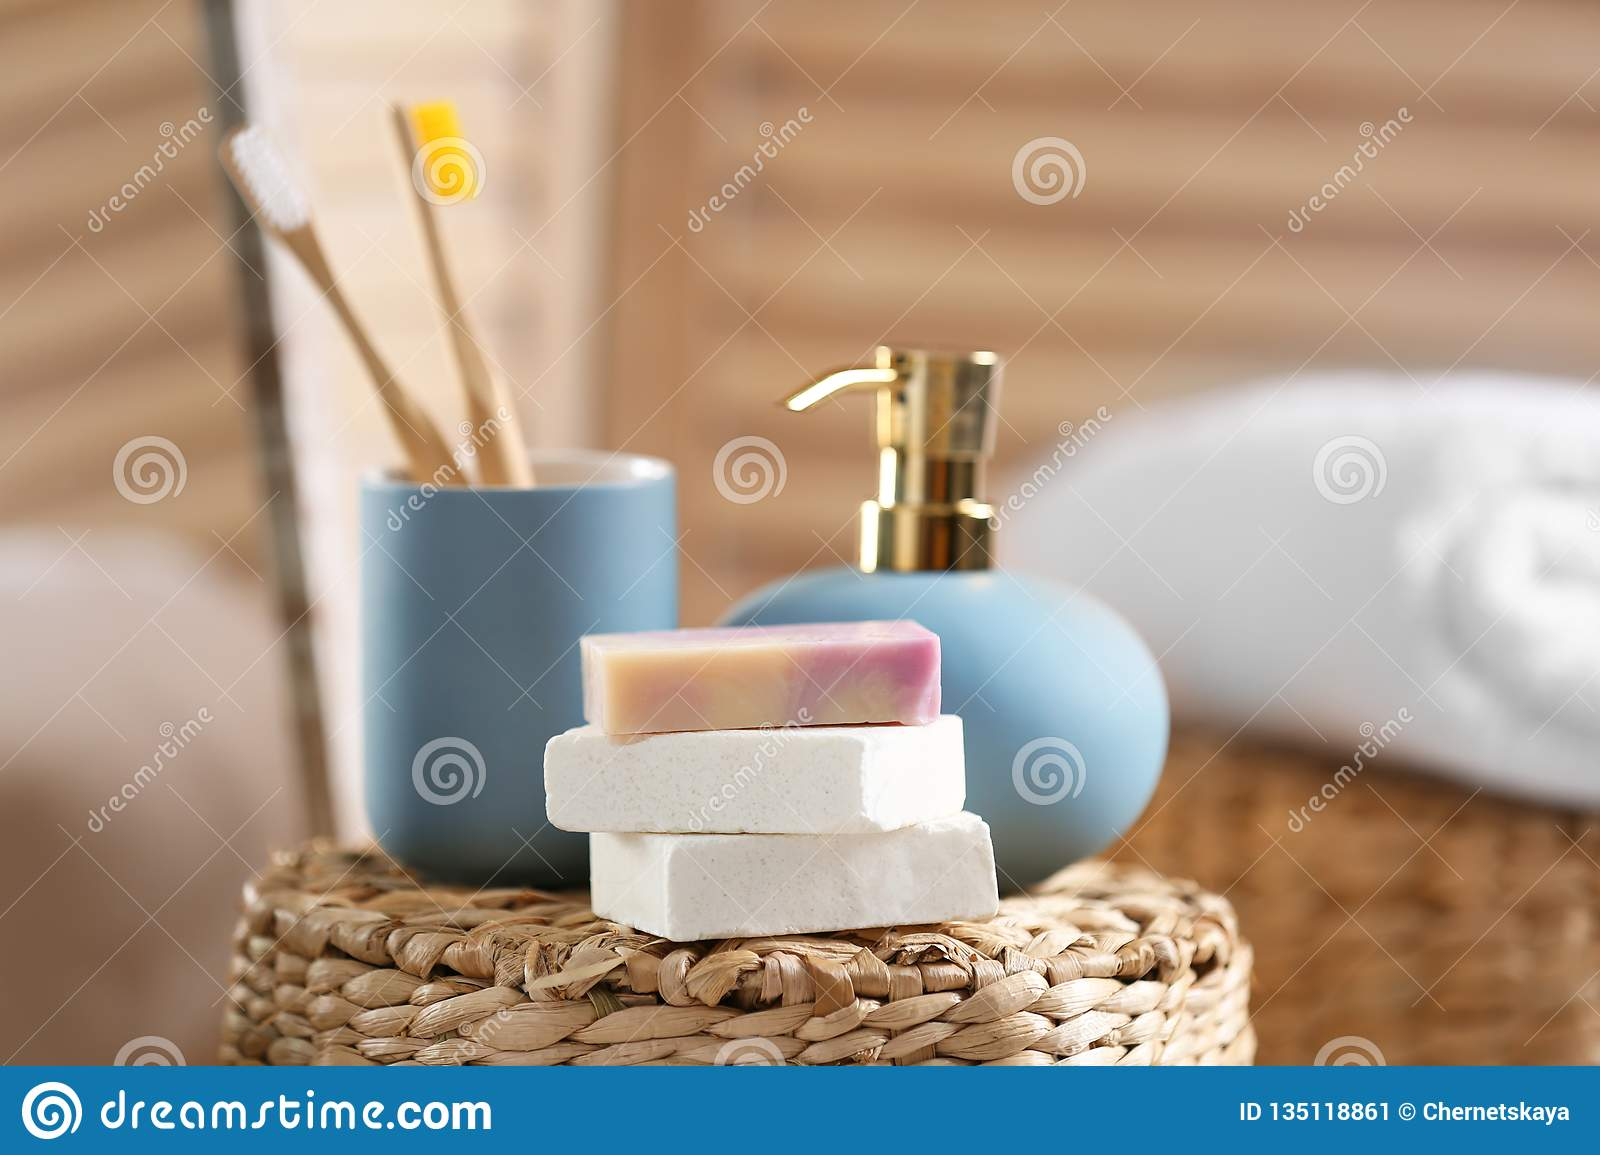 Composition with soap and toiletries on wicker basket